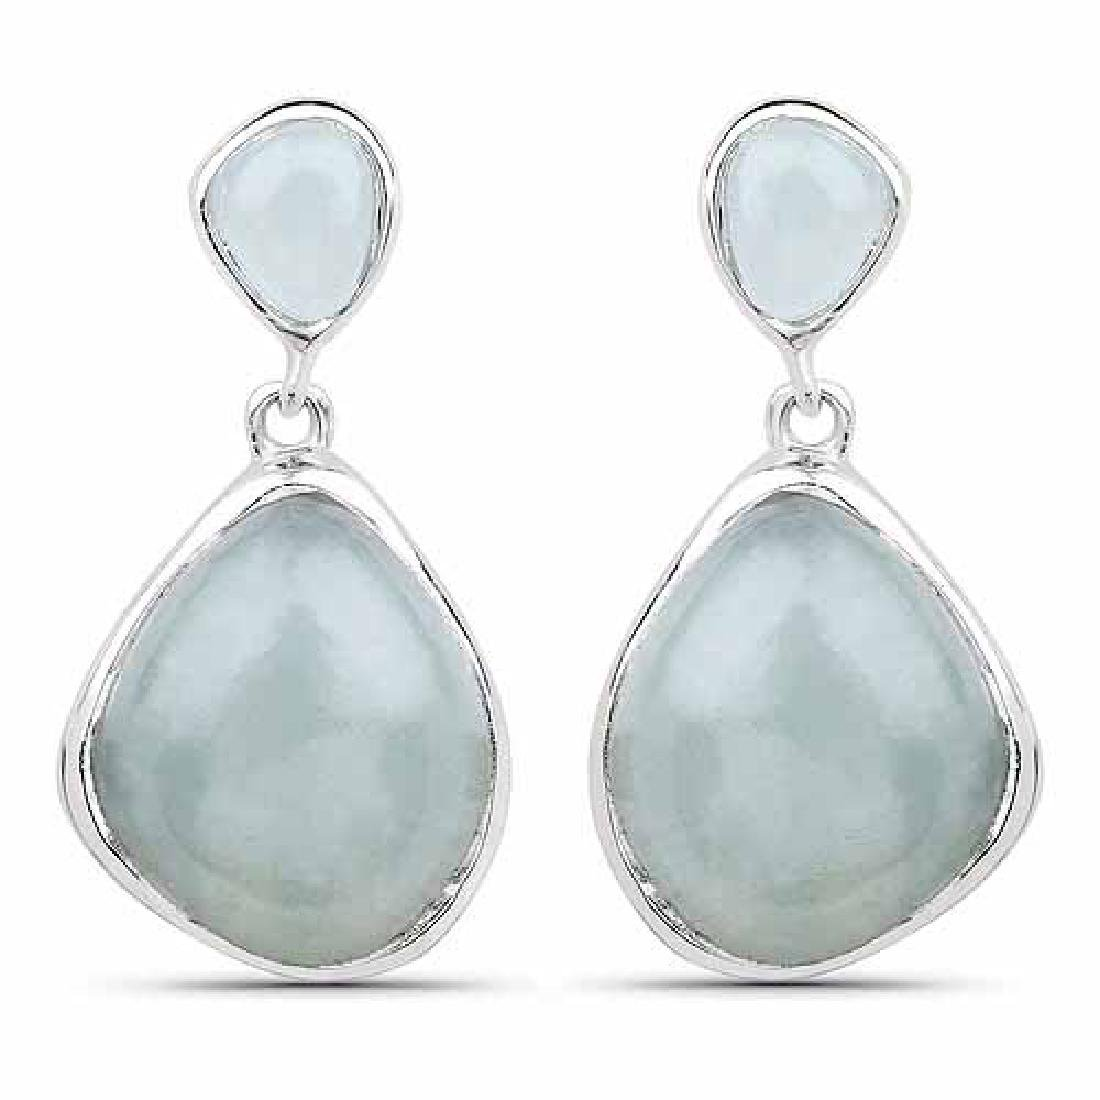 10.17 Carat Genuine Aquamarine .925 Sterling Silver Ear